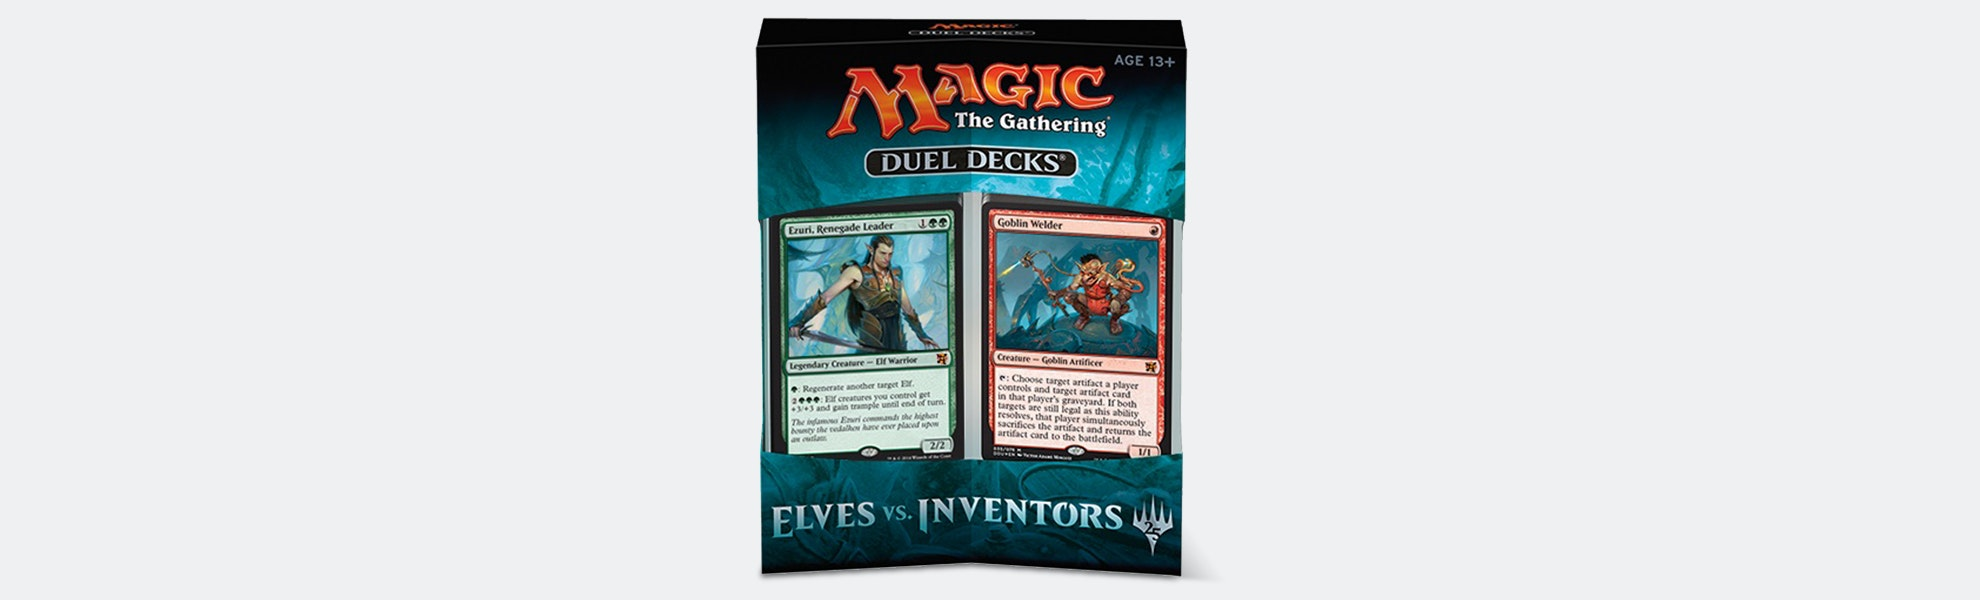 Duel Decks: Elves vs. Inventors